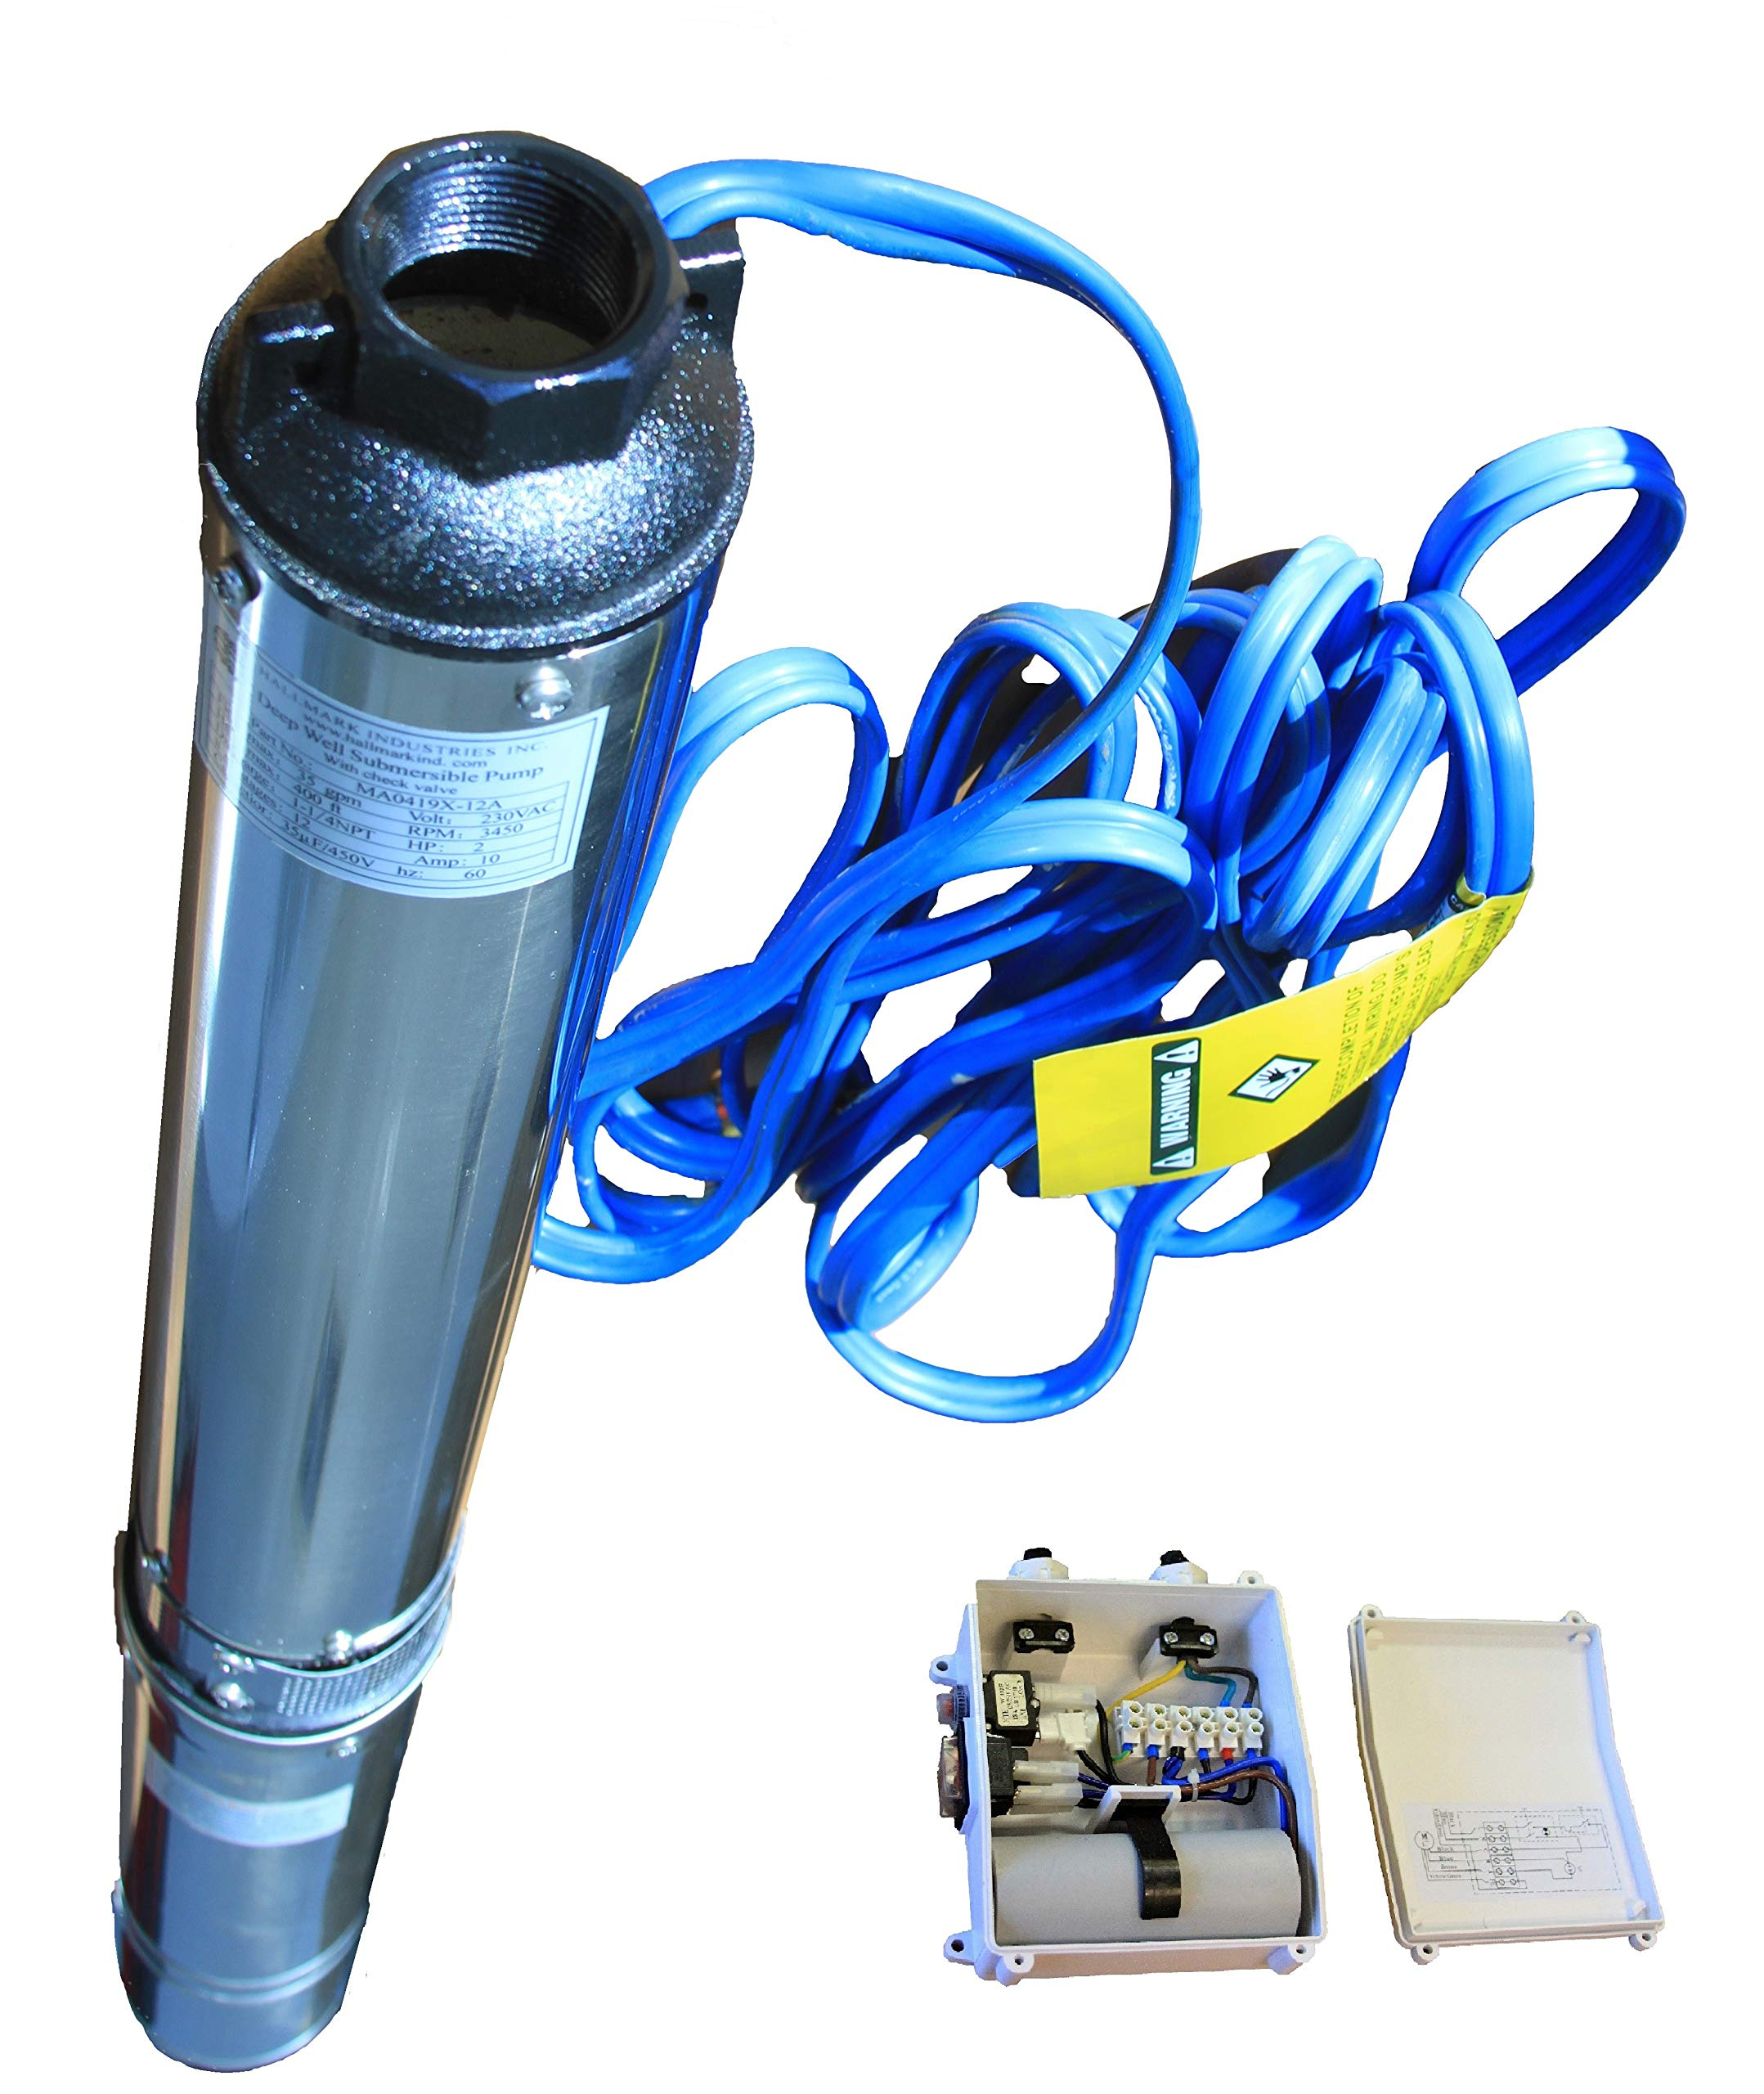 Hallmark Industries MA0419X-12AEXT Pump, 4'' Deep Well Submersible, 2 hp, 230VAC/60Hz/1Ph, 35 GPM Max, Stainless Steel, with Control Box, Stainless Steel